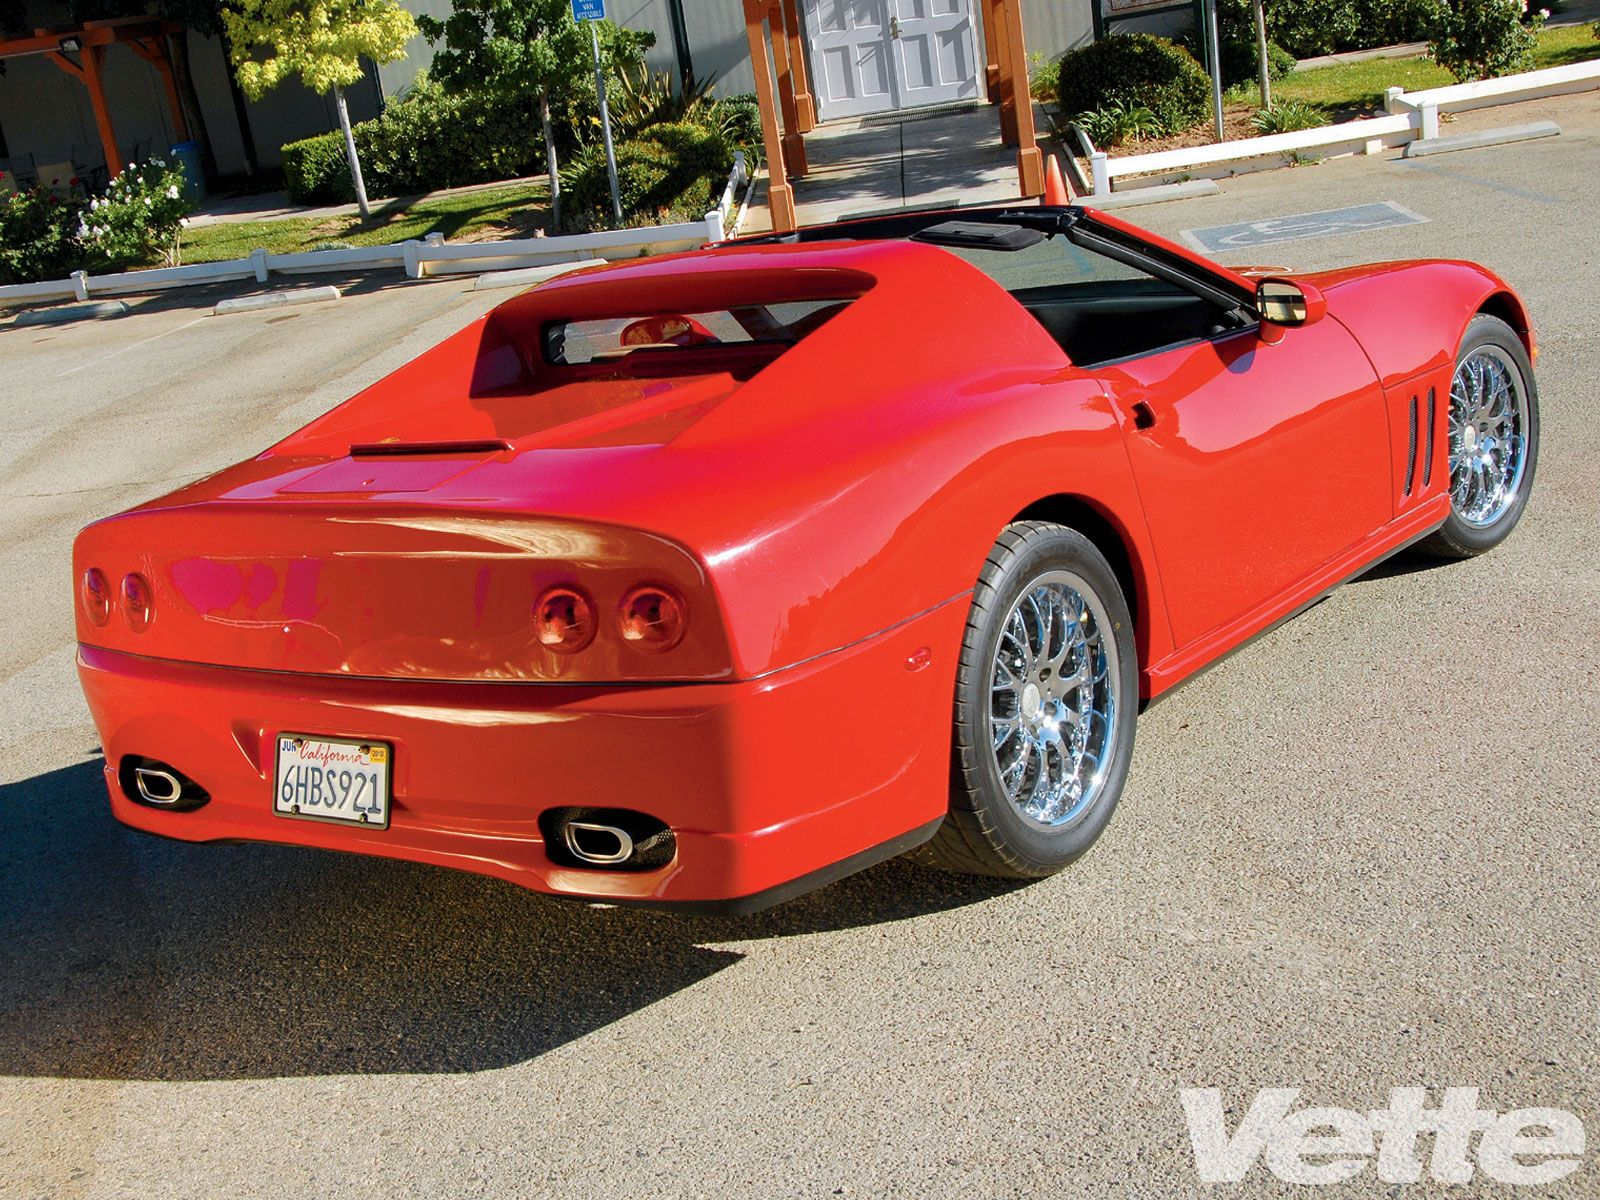 Corvette Hatchback Conversion – Wonderful Image Gallery